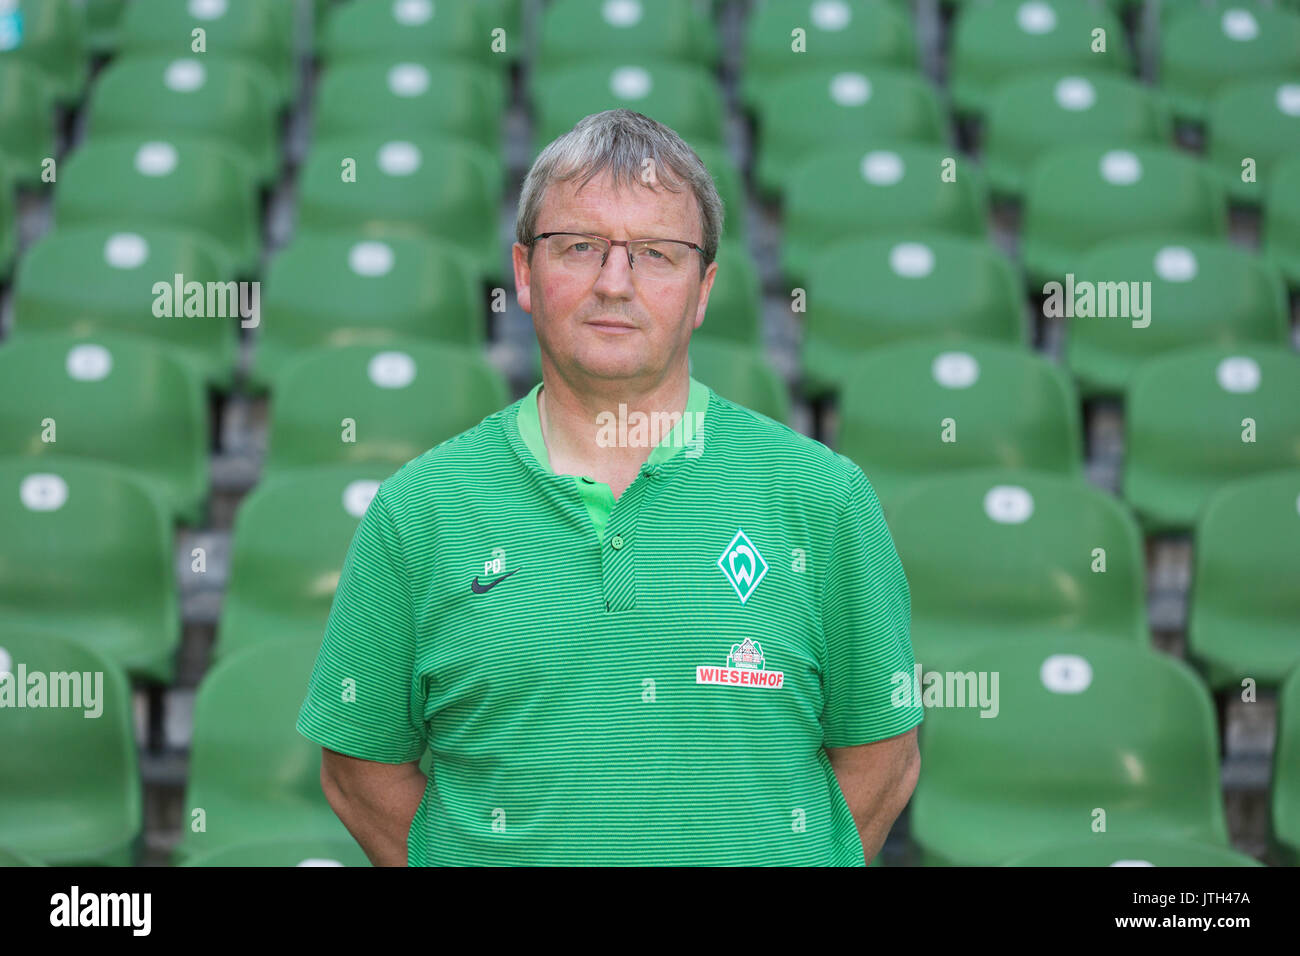 Bremen, Germany. 19th July, 2017. German Bundesliga, official photocall Werder Bremen for season 2017/18 in Bremen, Germany: kitman Peter Detjen. | usage worldwide Credit: dpa/Alamy Live News - Stock Image